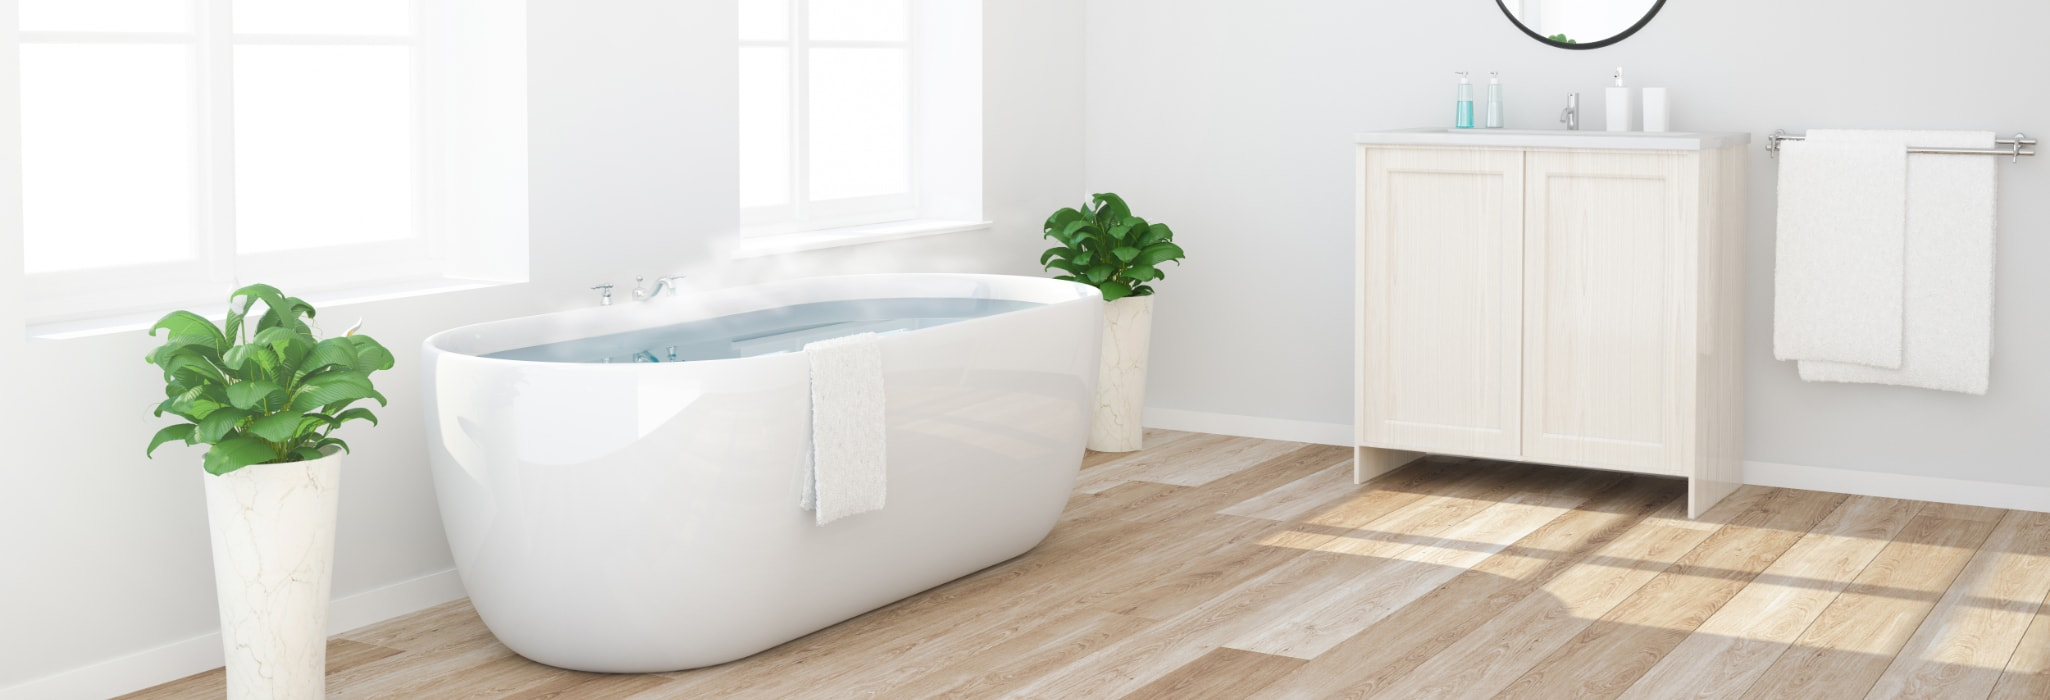 Bathtub with hot water.